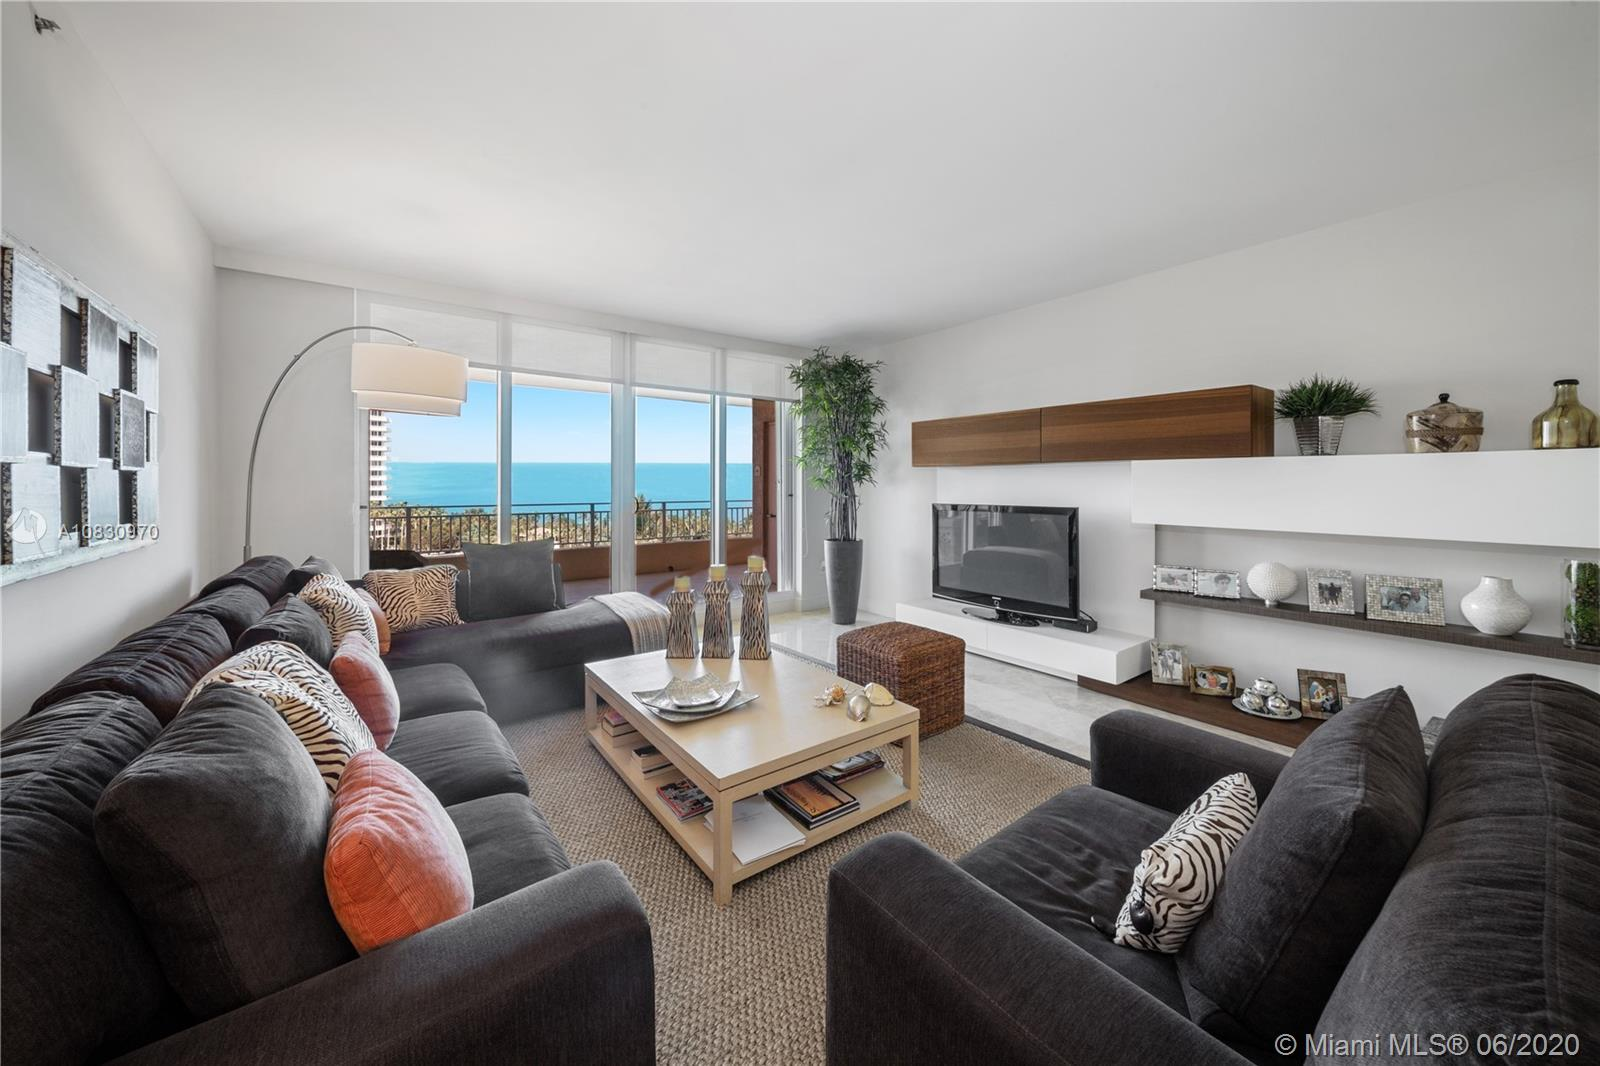 Stunning ocean and bay views from this corner unit at premier Ocean Tower One. Unit features 3 Beds + Den + Staff quarters, 4.5 Baths and has been remodeled with a new Italian kitchen with European-style glass enclosure allowing you enjoy both ocean and bay views from every social area. Kitchen includes a new smart designed island and a very ample pantry. All new Italian doors, custom electric shades and blackouts in every bedroom, new wood type floor in all bedrooms, all crystal shower doors, custom closets. Absolute pristine condition. Offered furnished and ready to move in!  **SEE VIDEO IN VIRTUAL TOUR**